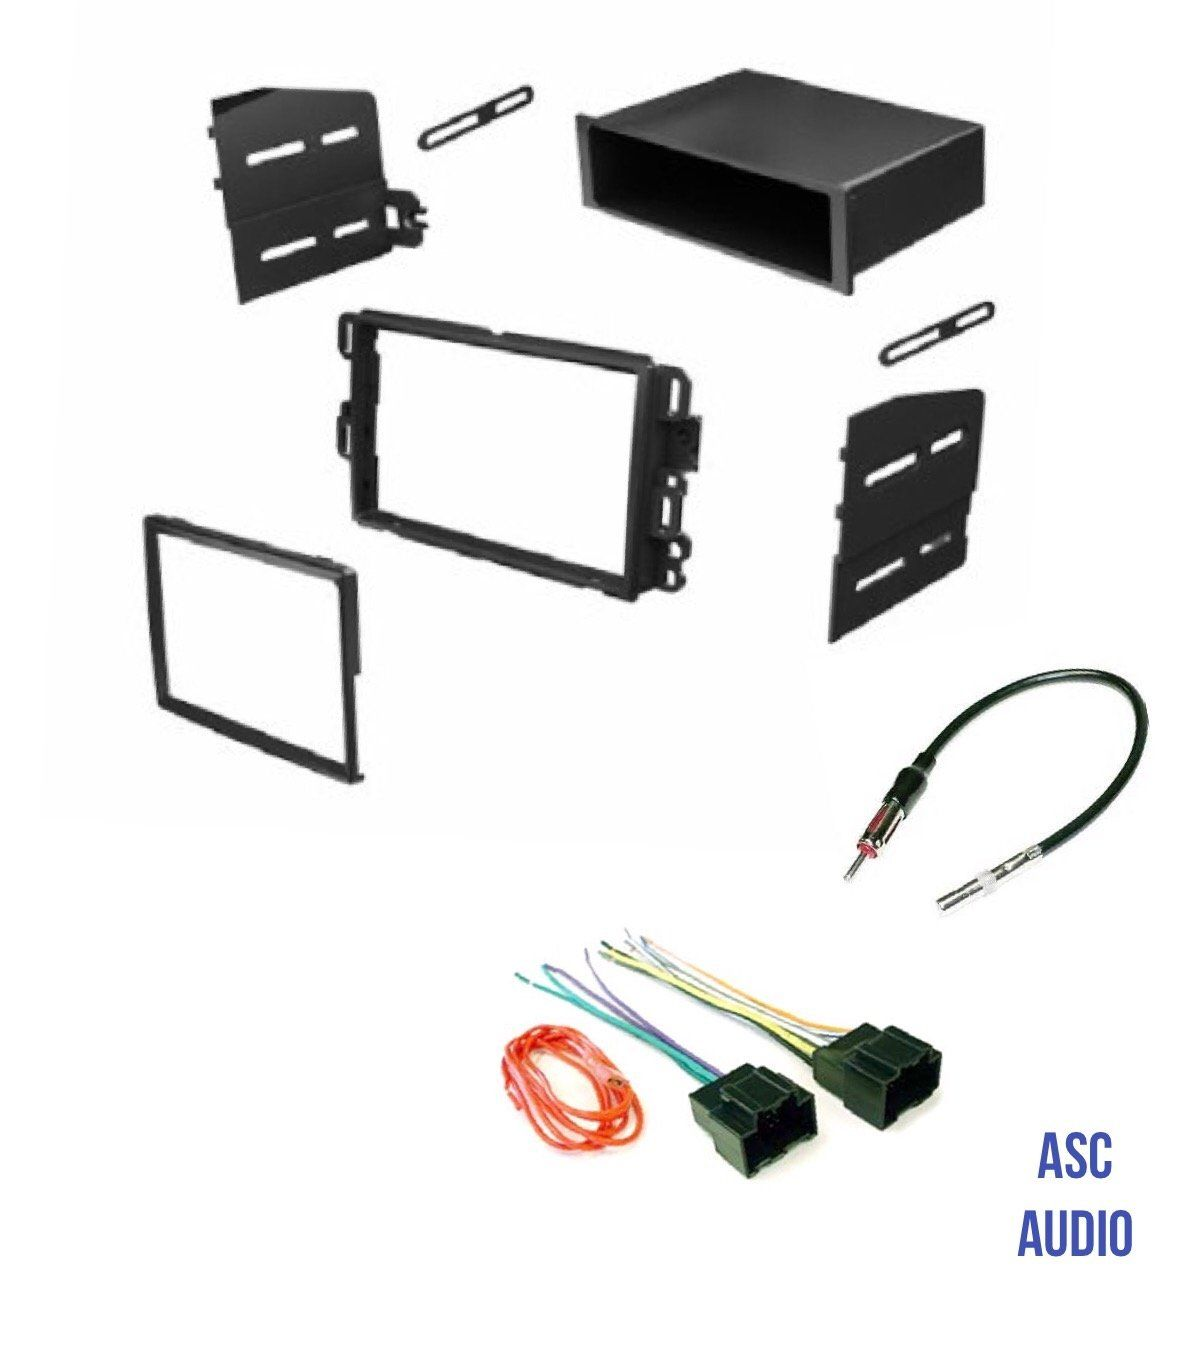 5a29dfae1512d1aaeca596a396162f89 asc audio car stereo dash kit, wire harness, and antenna adapter  at fashall.co